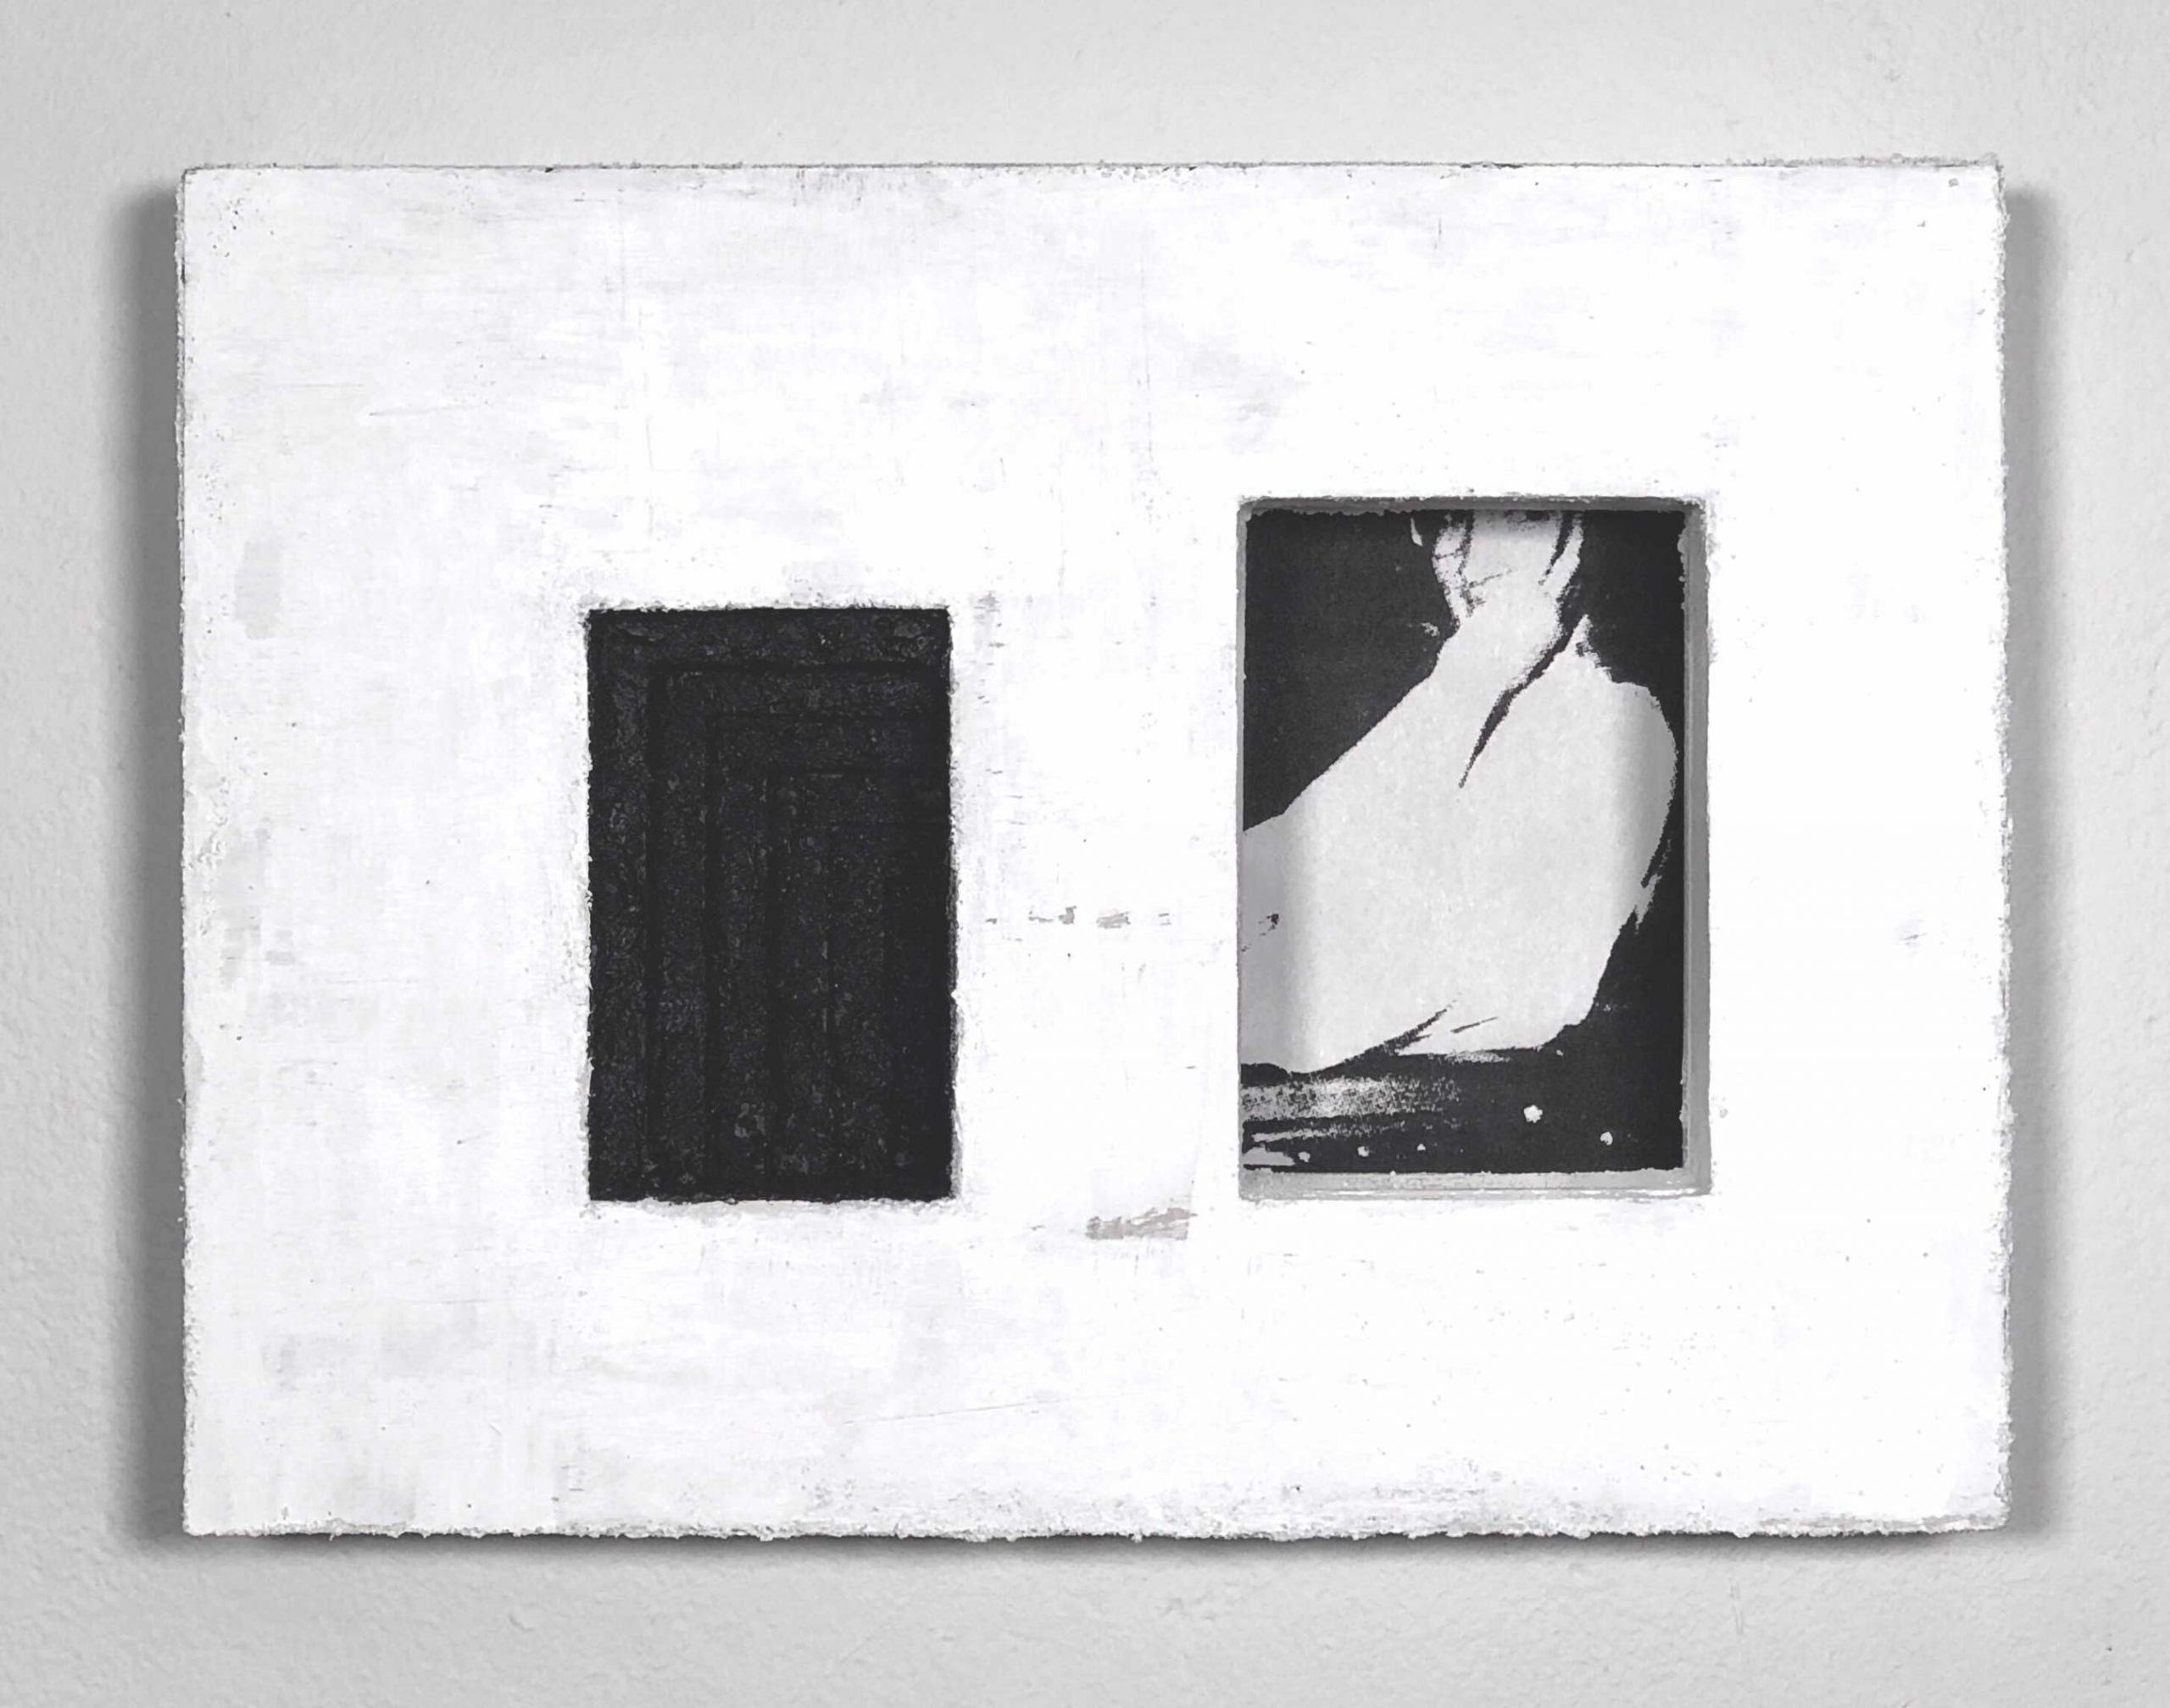 White rectangular block with two rectangular insets of different sizes. The left inset area is black with tonal geometric lines. The right inset area is slightly larger and holds a print. The print is a high-contrast, close up portrait of a person leaning on their arm with forearm and hand drawn up to their face.